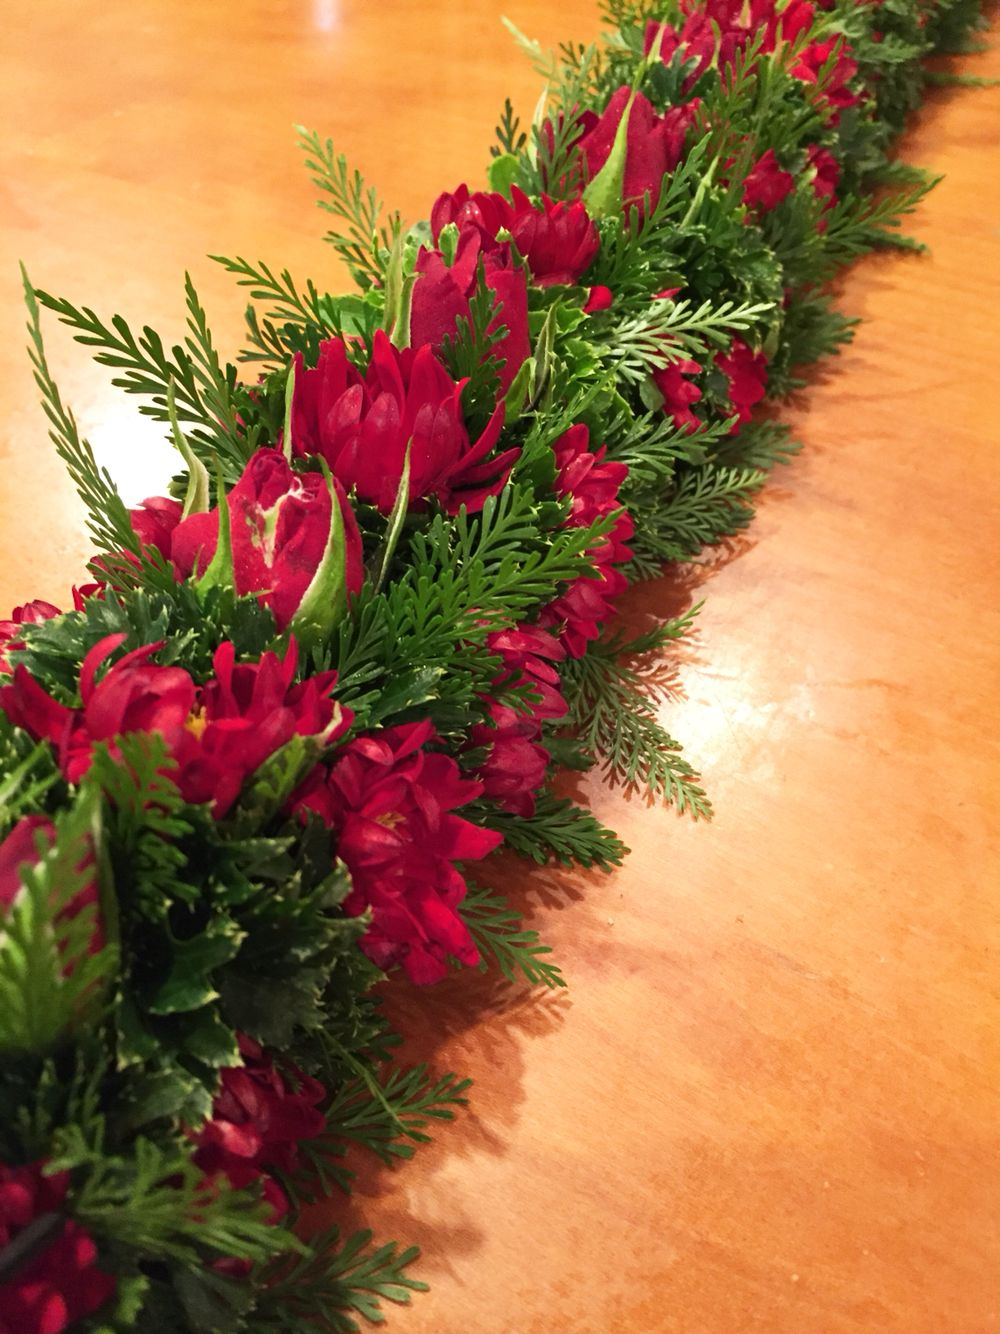 This lei is name of the red lovely leis pinterest leis this lei is name of the red izmirmasajfo